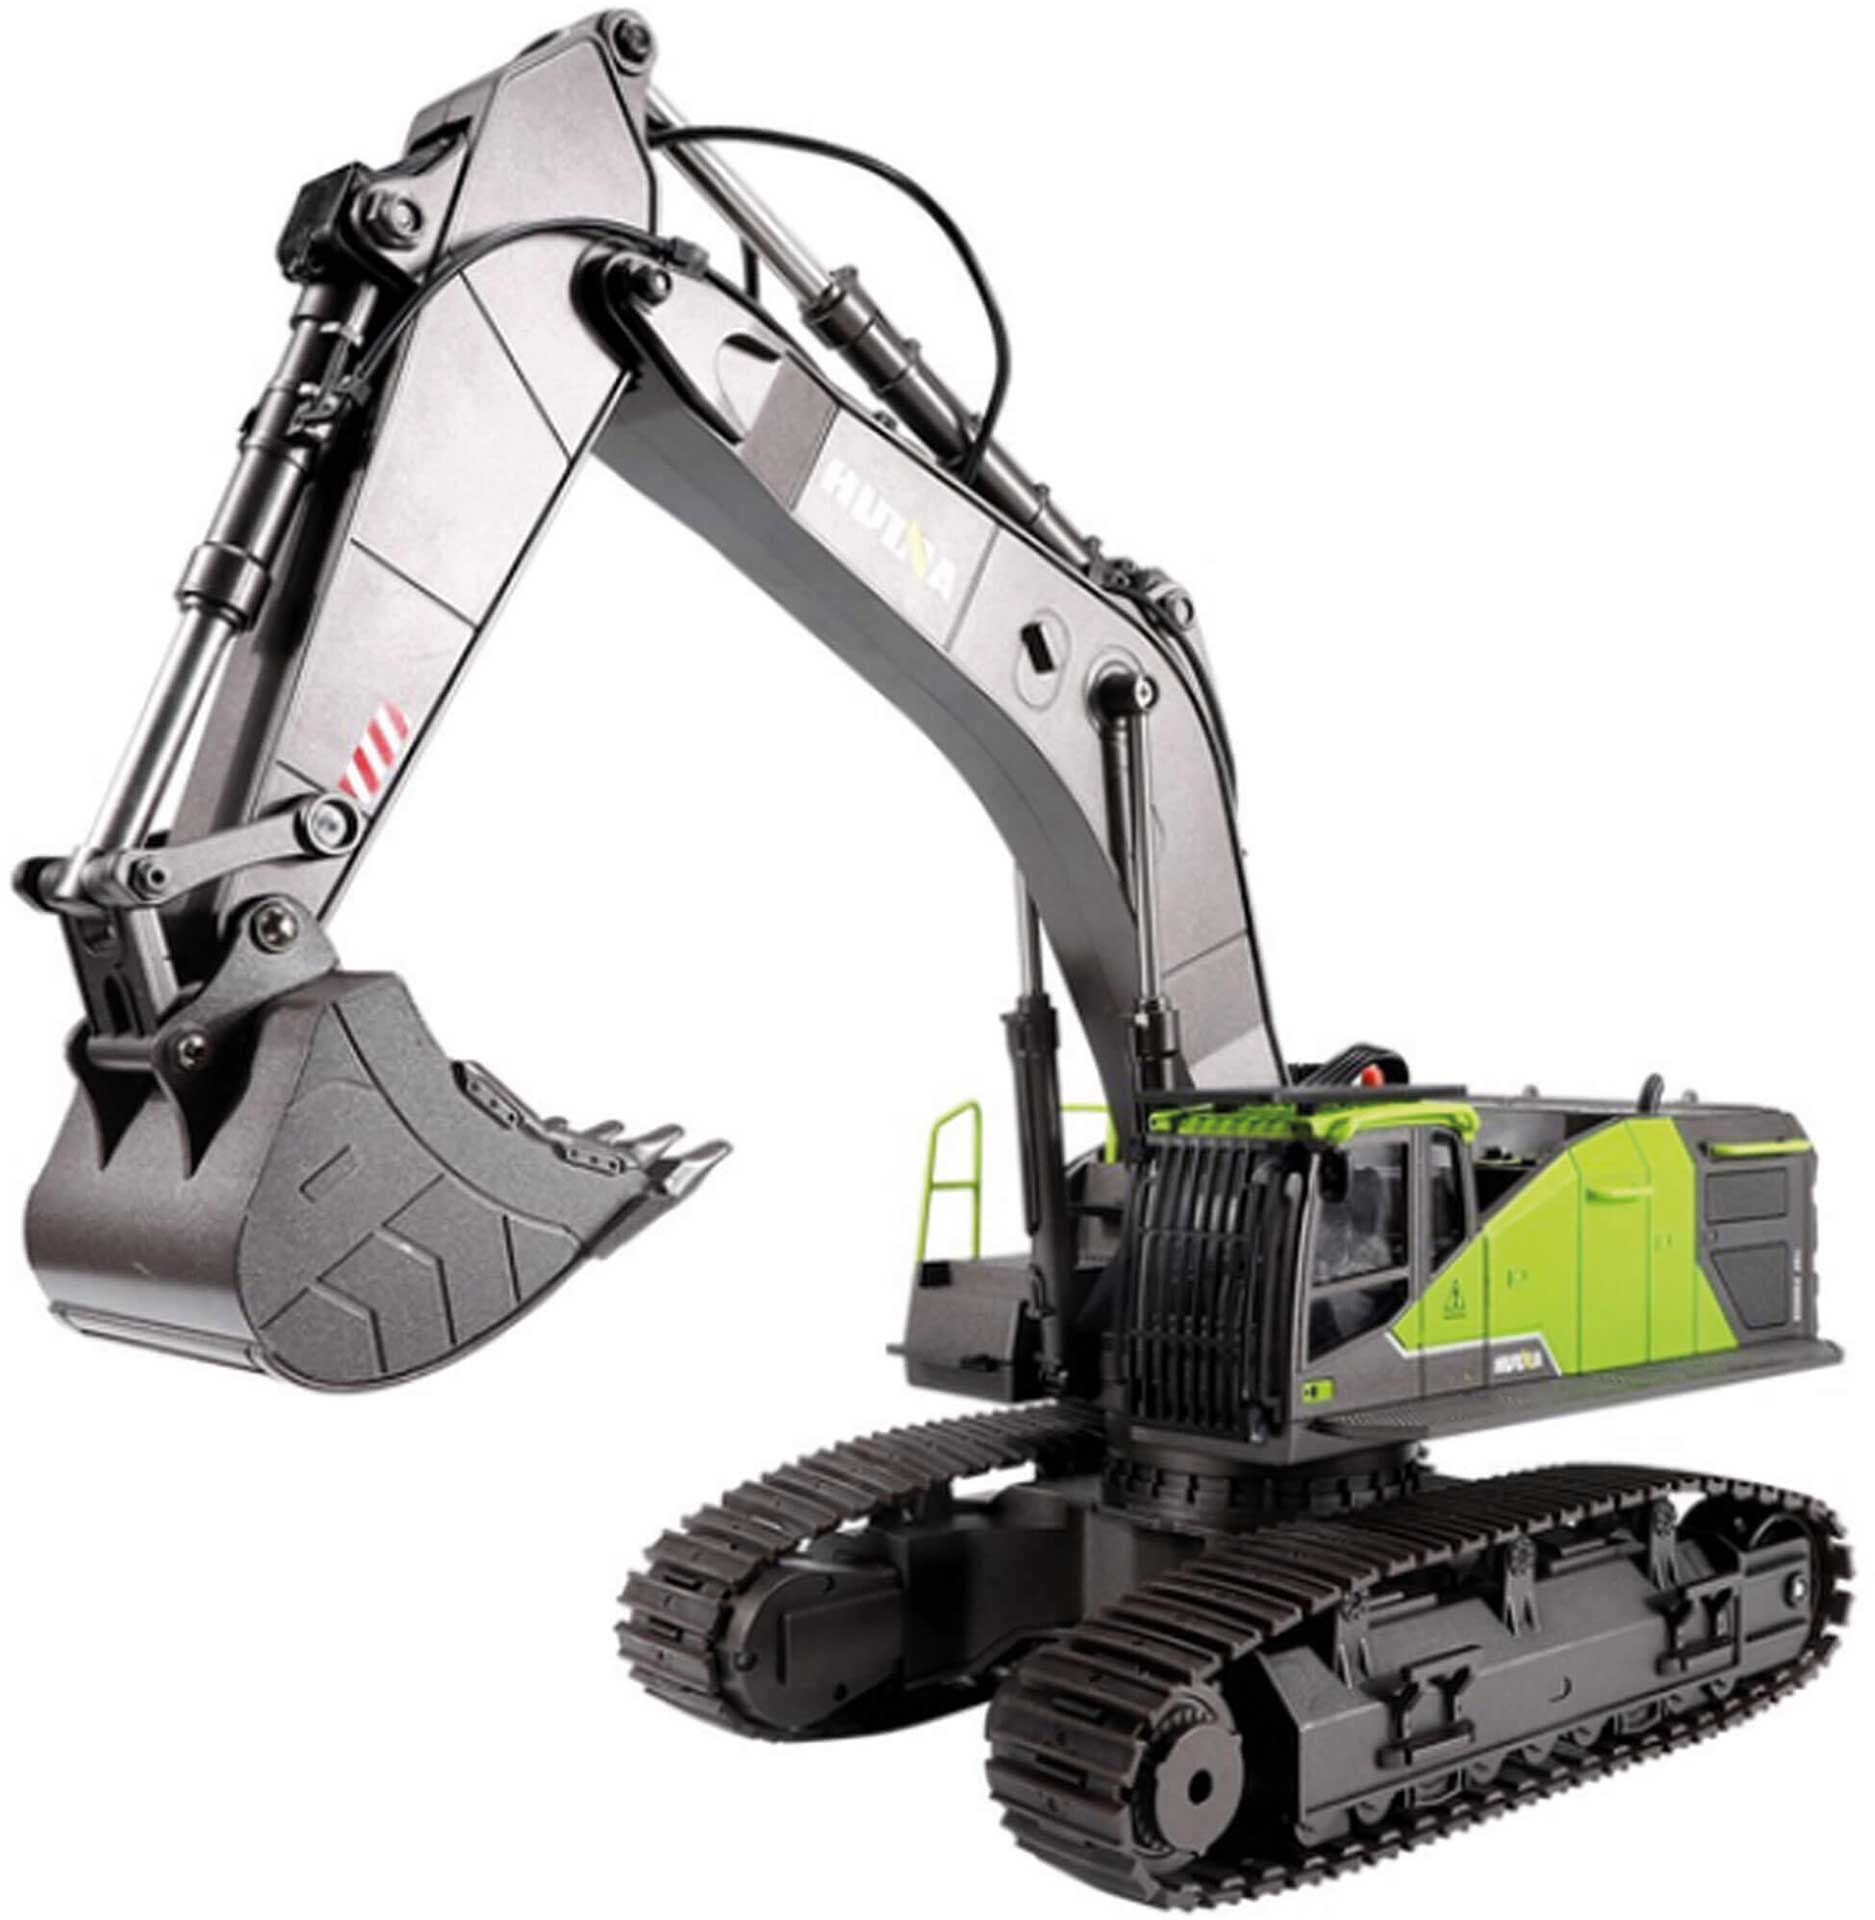 FM-ELECTRICS Tracked Excavator 1:14 Green with High-Quality Technik RTR